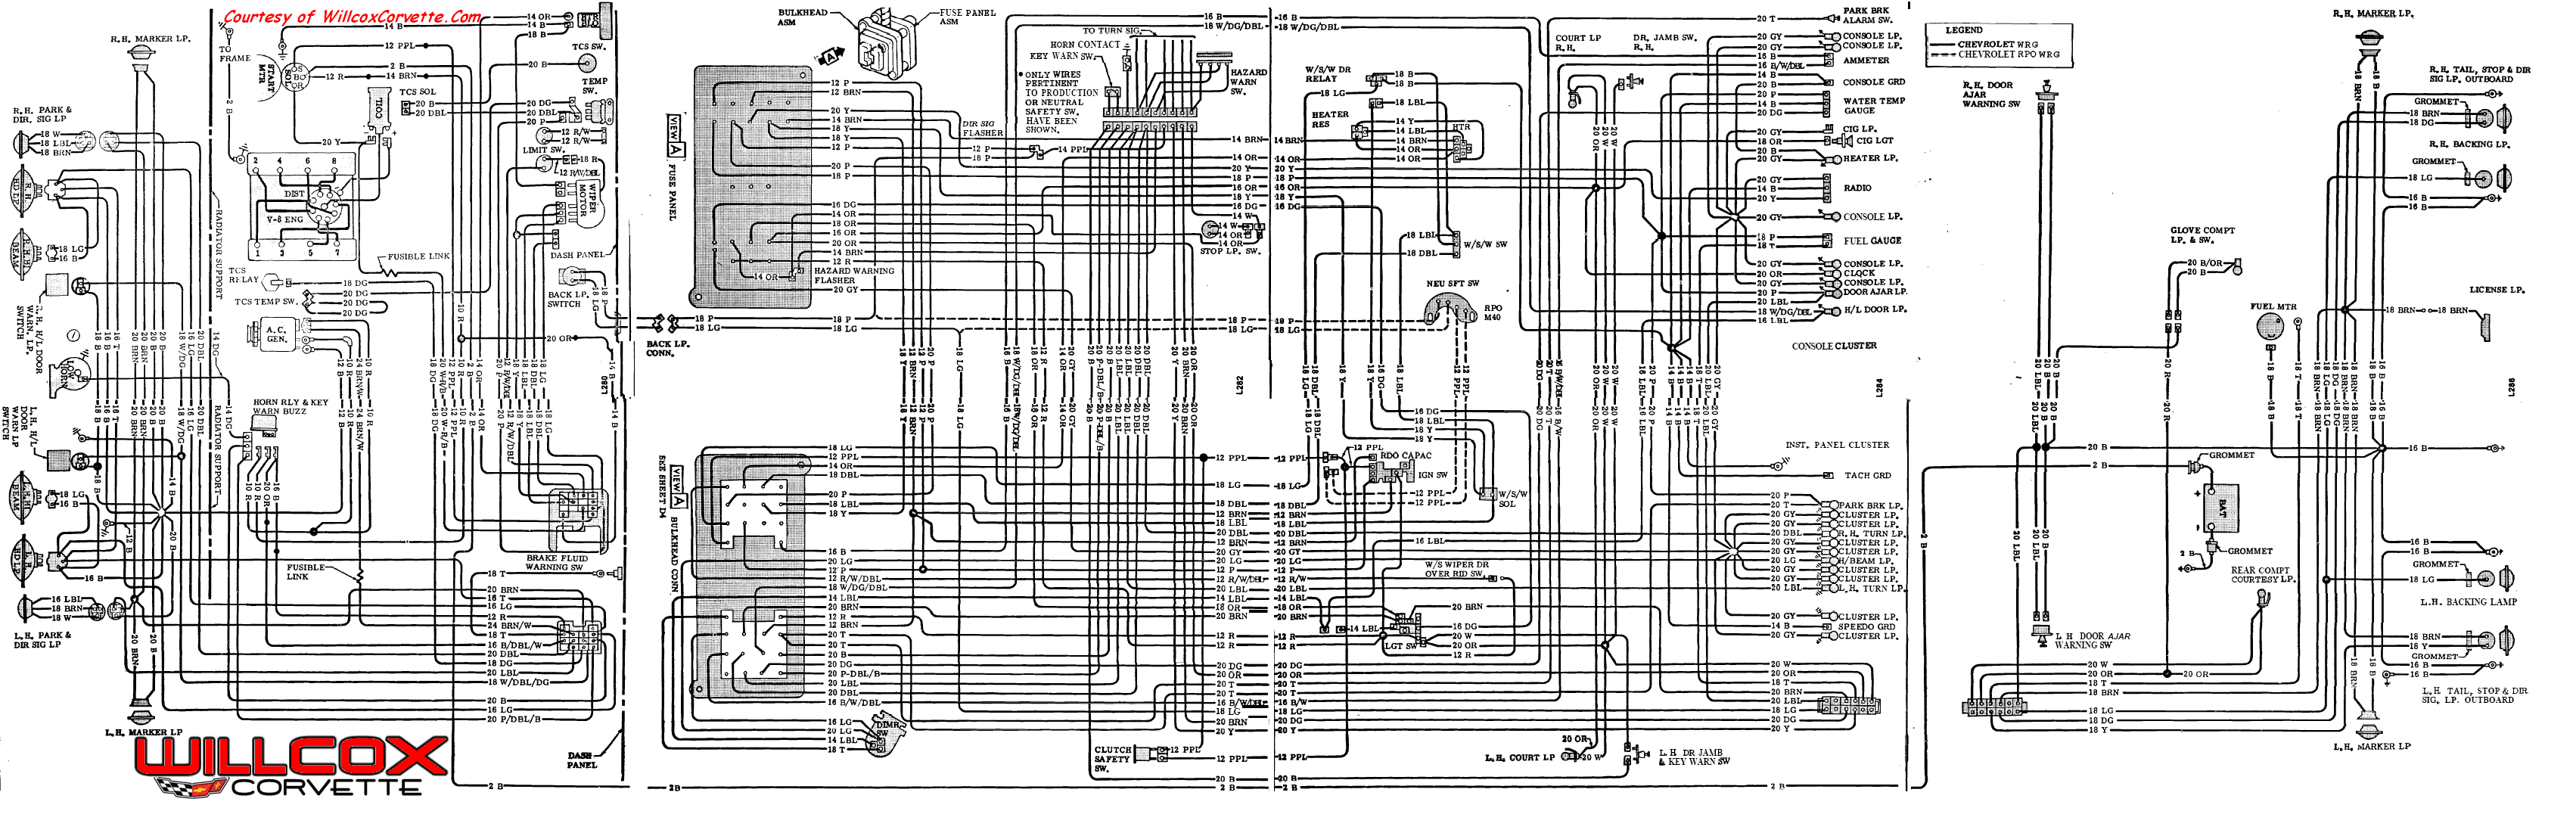 1971 Corvette Wiring Diagram Another Blog About 71 Wiper Motor Wire Schematic Tracer Willcox Inc Rh Repairs Willcoxcorvette Com Radio